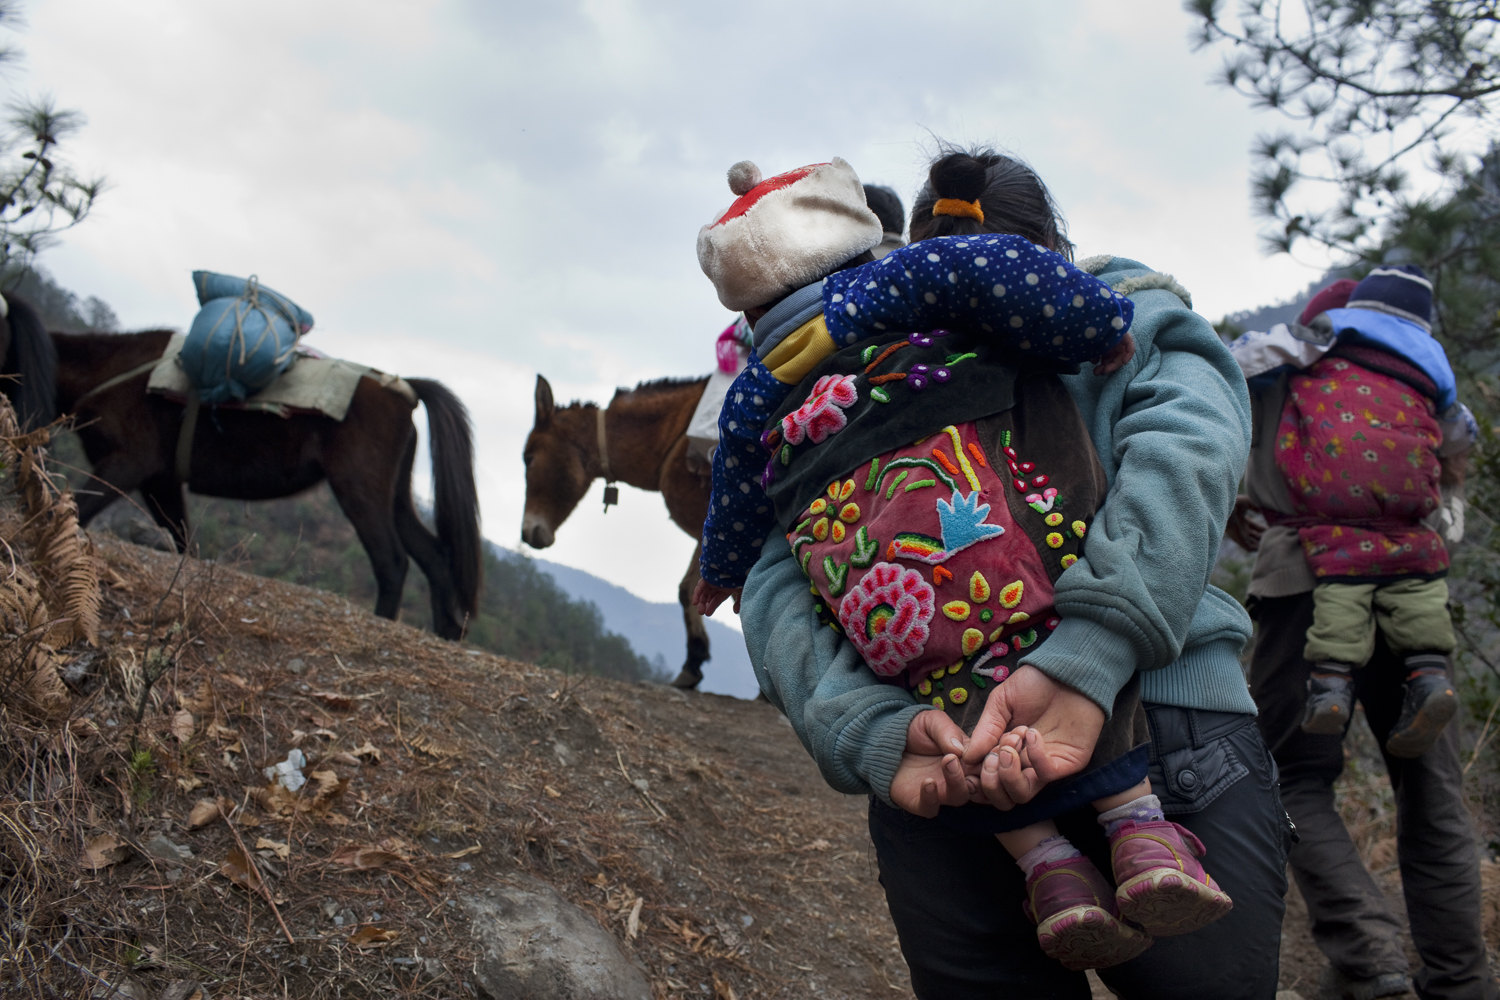 Families on their way back to Baihanluo after celebrating Spring Festival in another village. This village sits on top of a mountain and like Dimaluo is a Catholic Tibetan village. This pack train is bringing supplies up and some are making New Years visits.